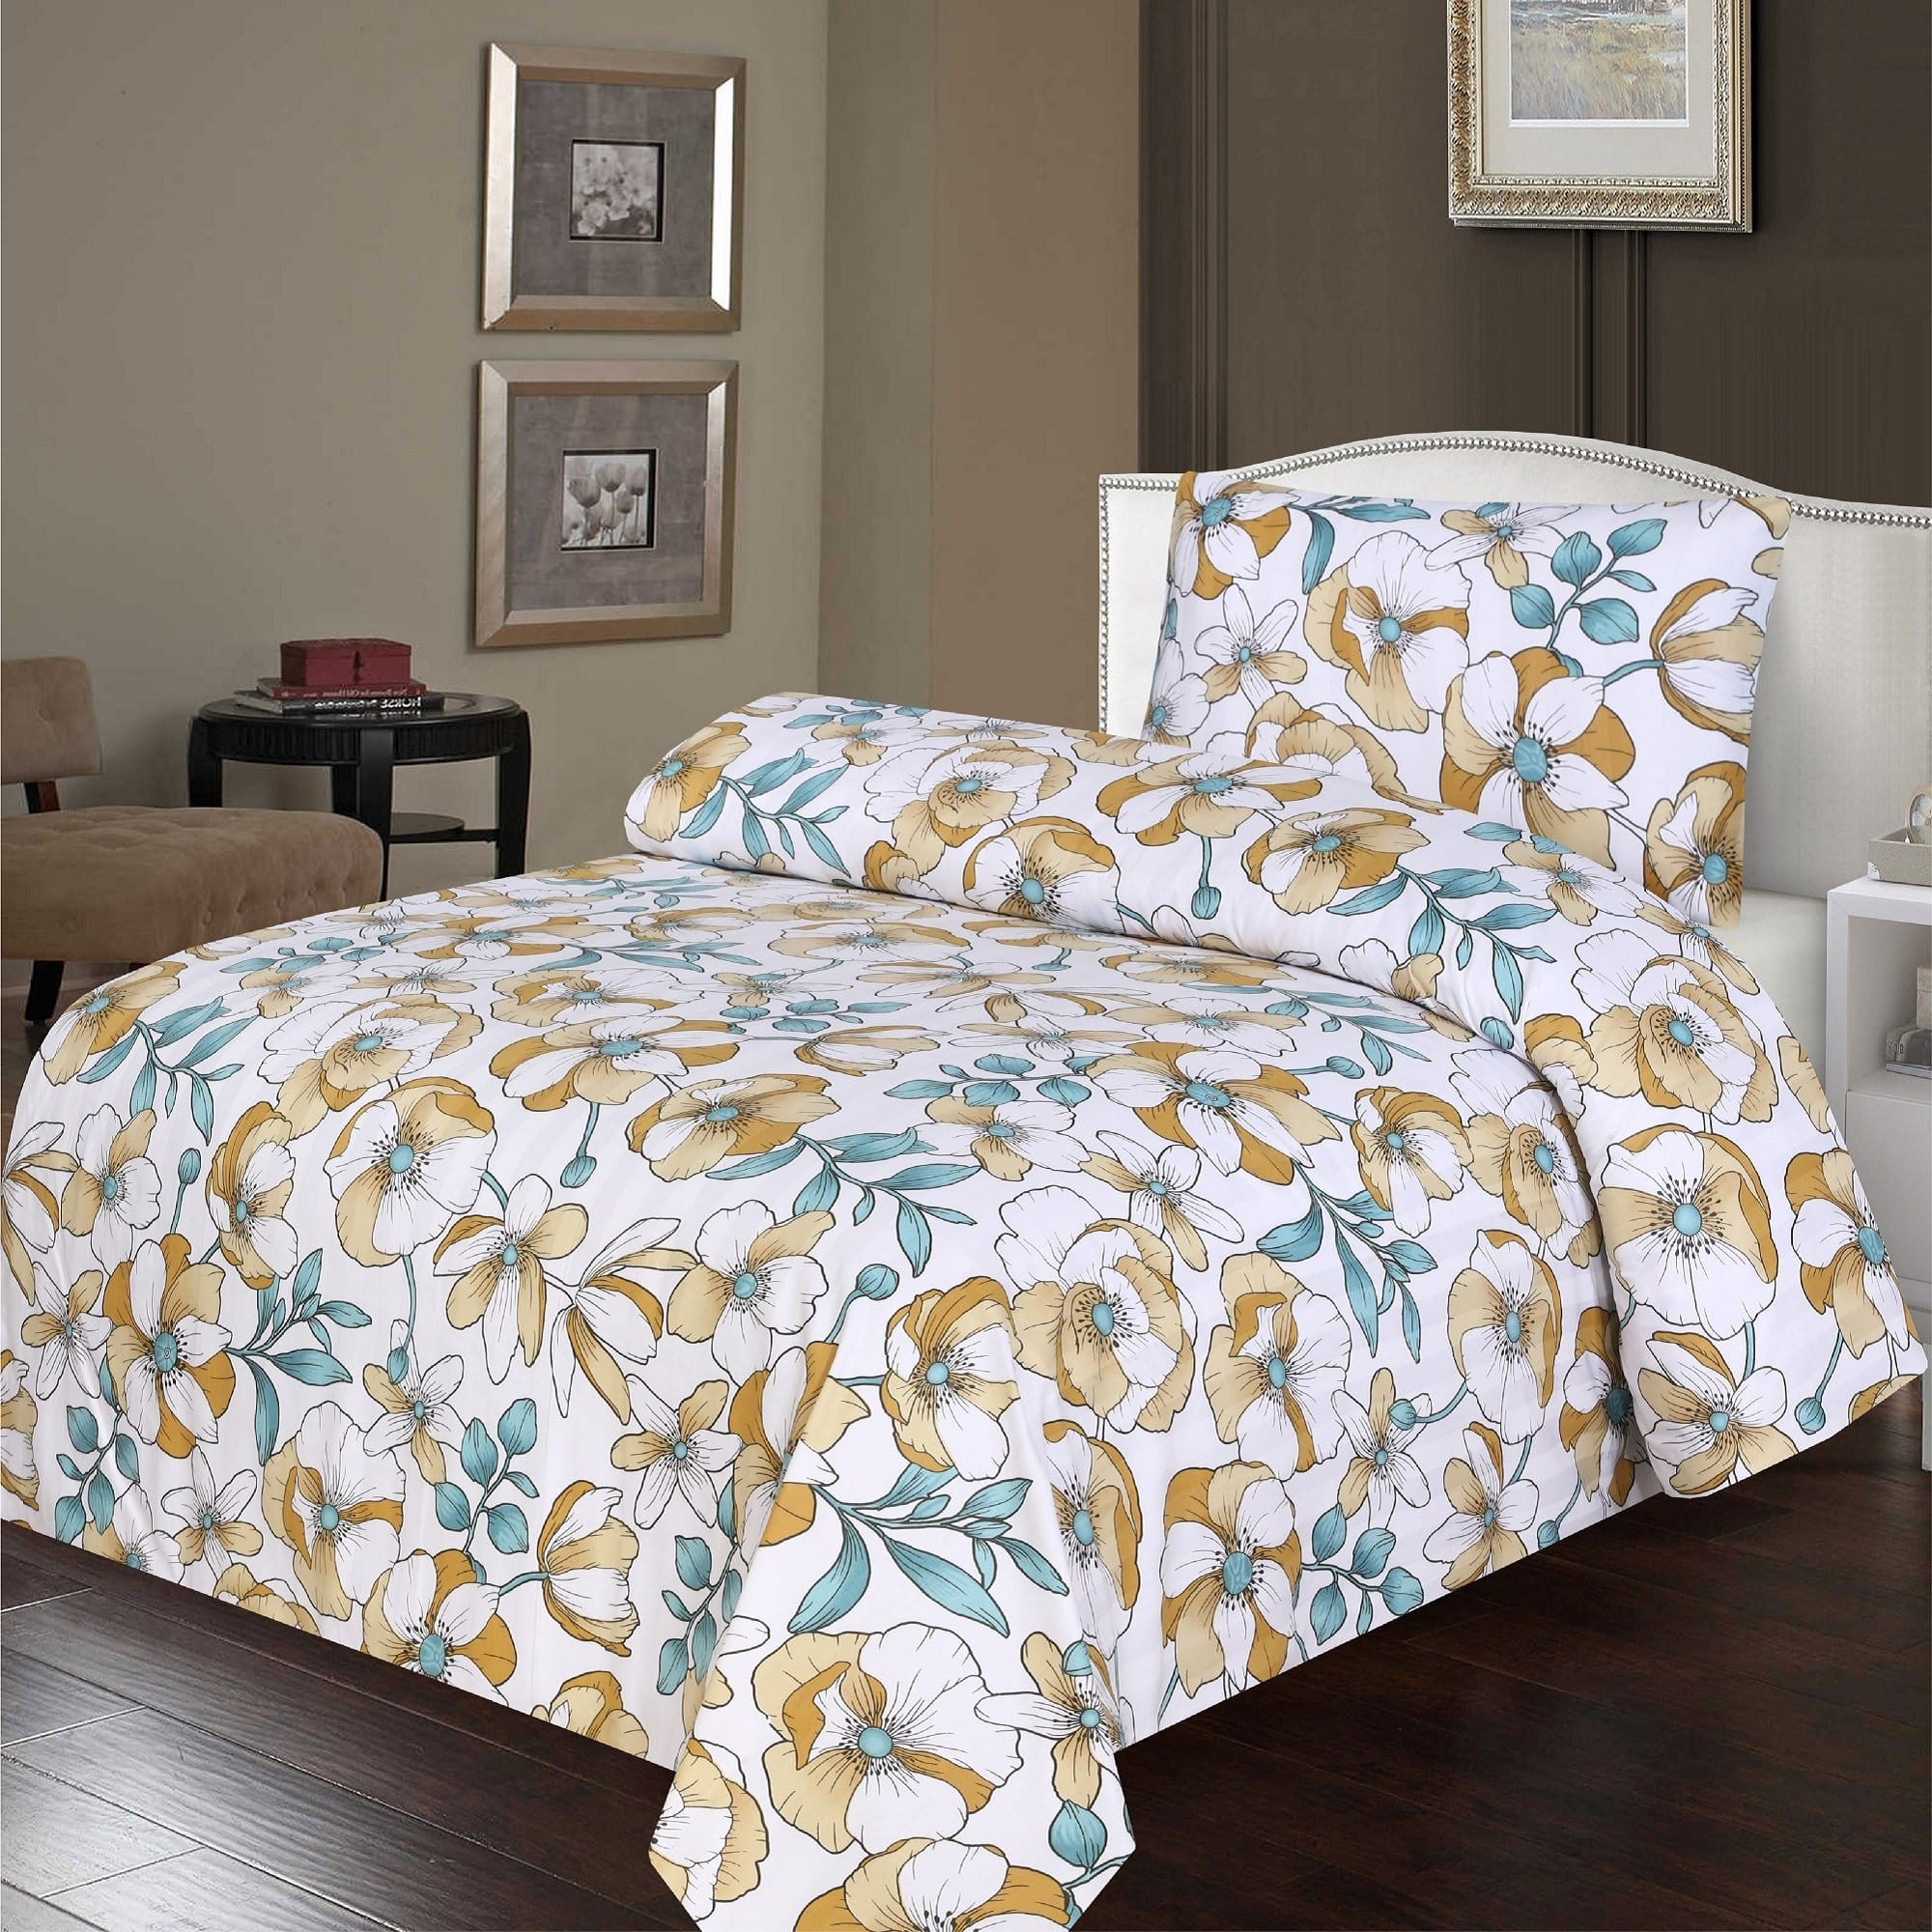 Grace D396-Reactive cotton Satin Quality single size Bedsheet with 1 pillow cover.